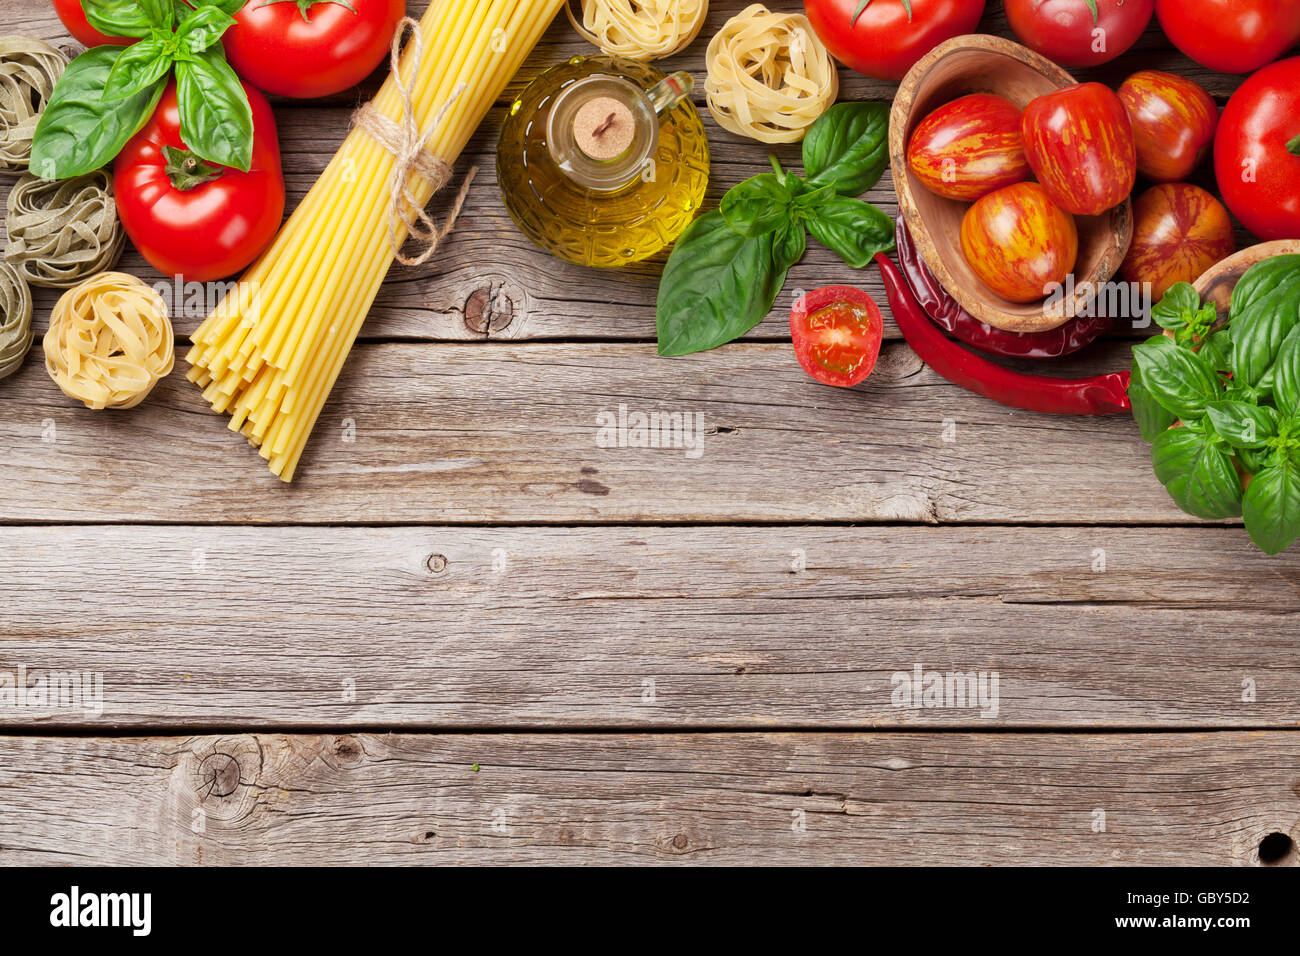 Italian food cooking. Tomatoes, basil, spaghetti pasta, olive oil and chili pepper on wooden kitchen table. Top Stock Photo